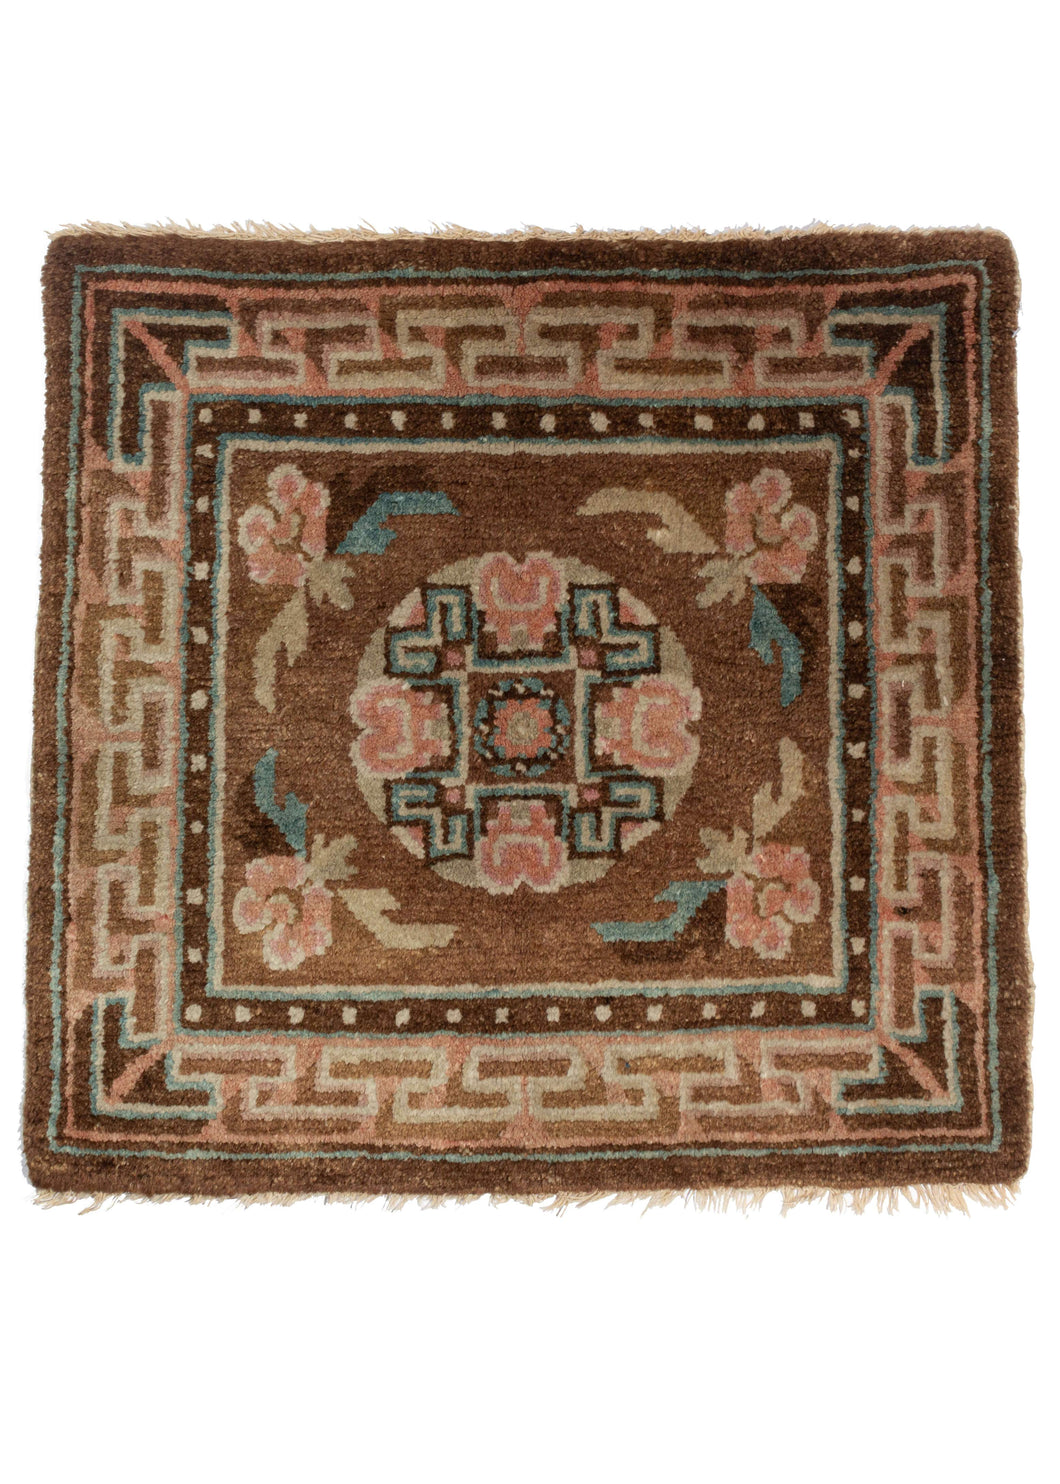 Antique Tibetan Meditation Mat with a geometric modern border and florals and bats